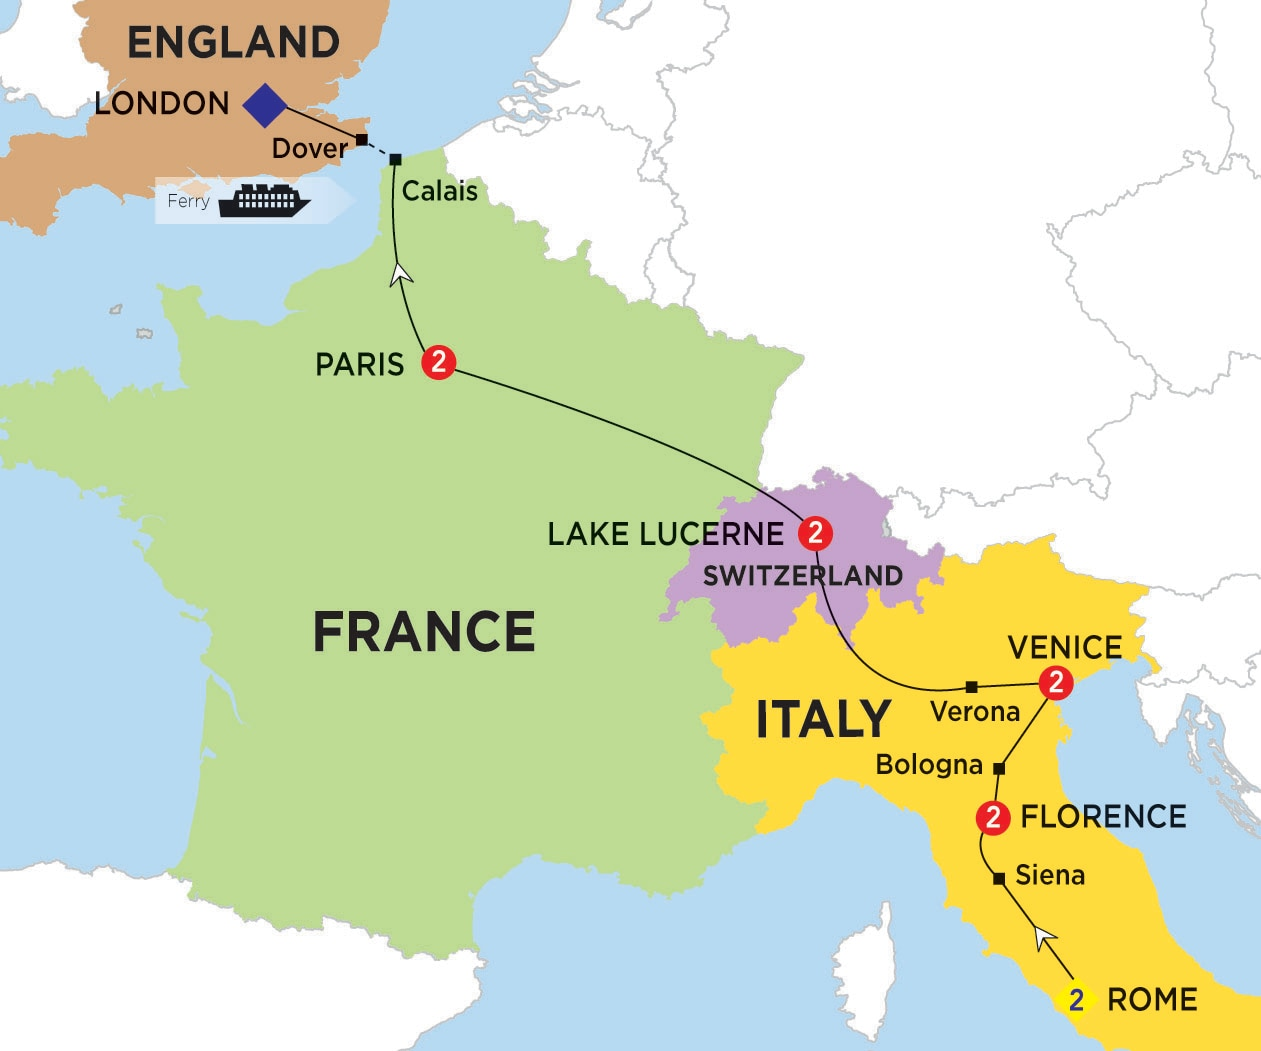 Map Of England To France.Europe And Britain Trips Trafalgar Au